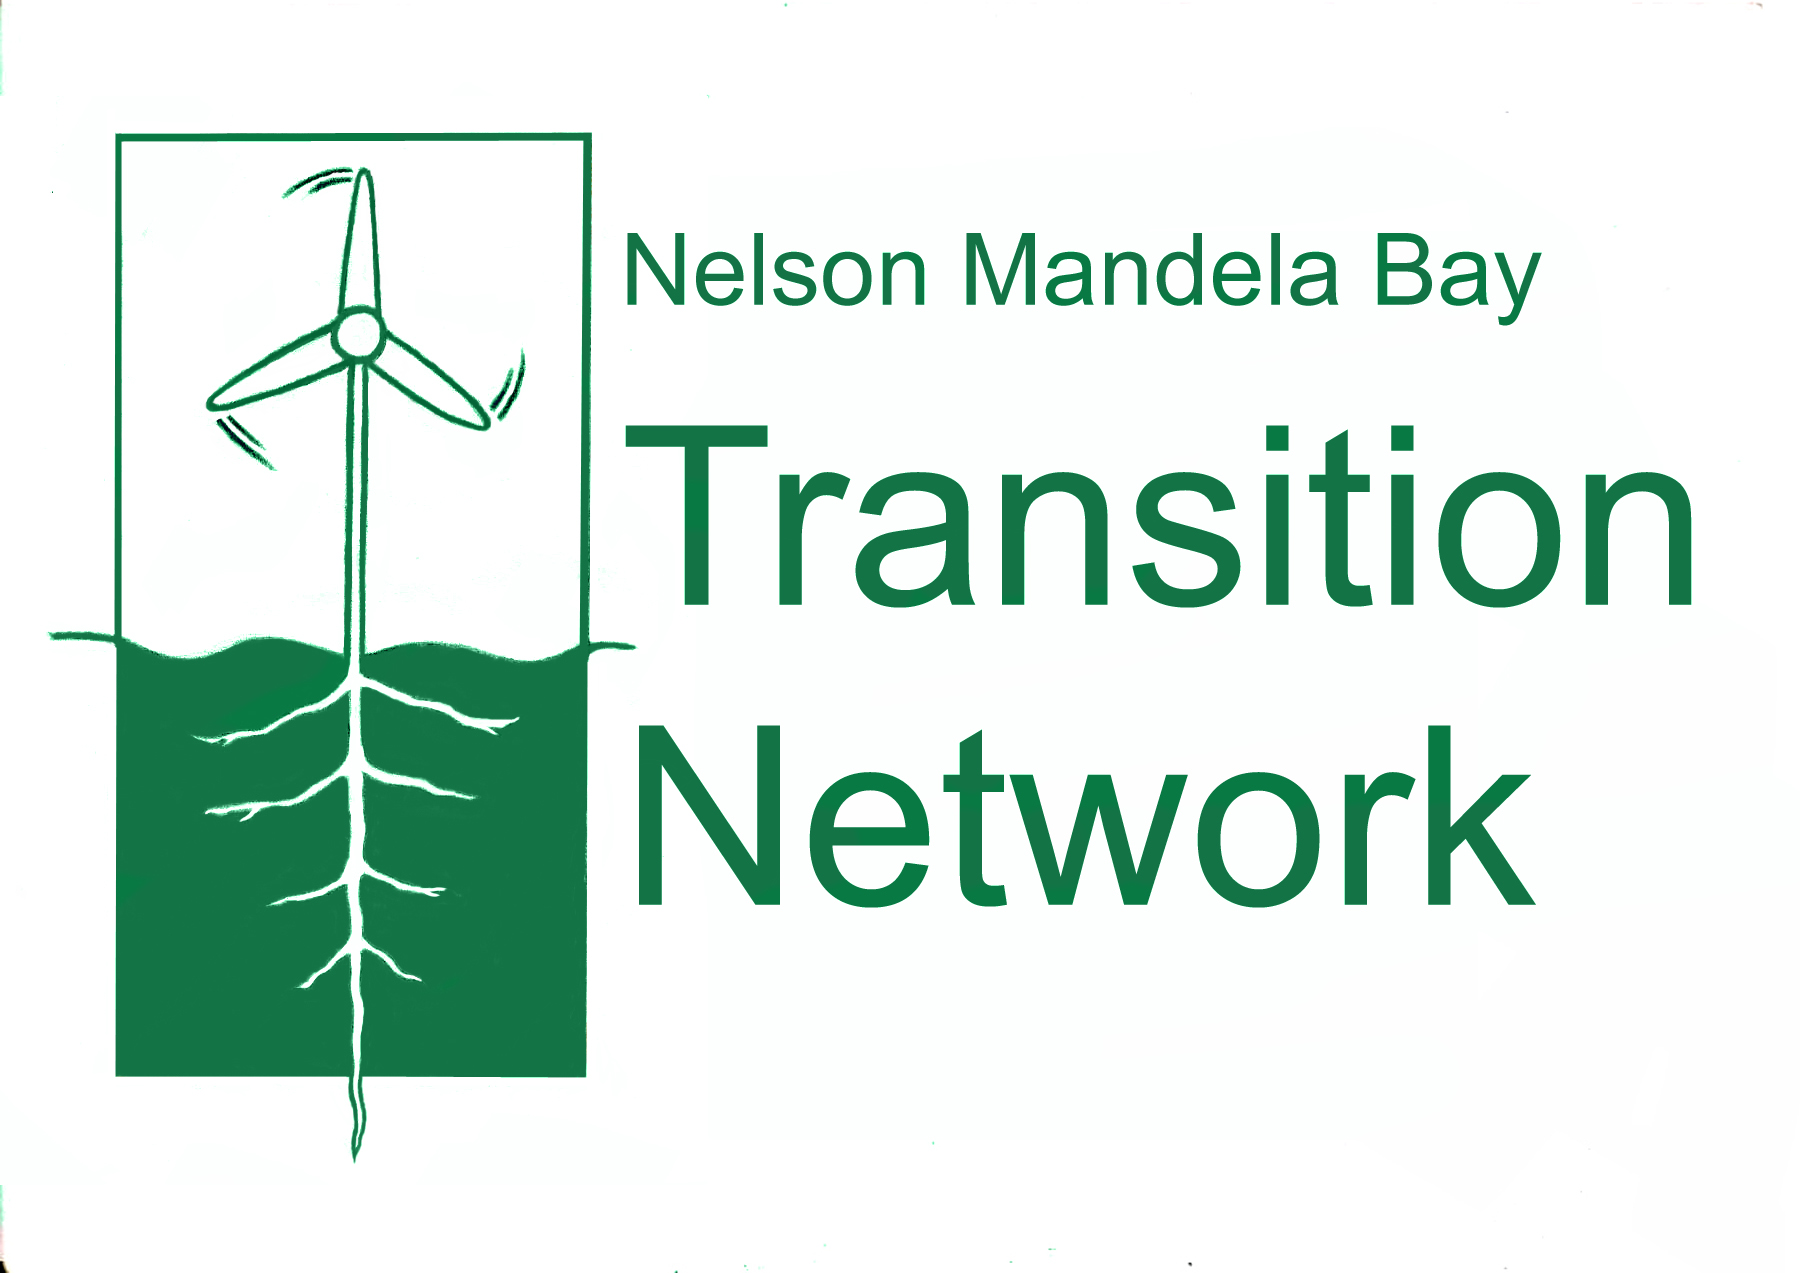 Nelson Mandela Bay Transition Network aiming for a low-carbon, locally resilient metro